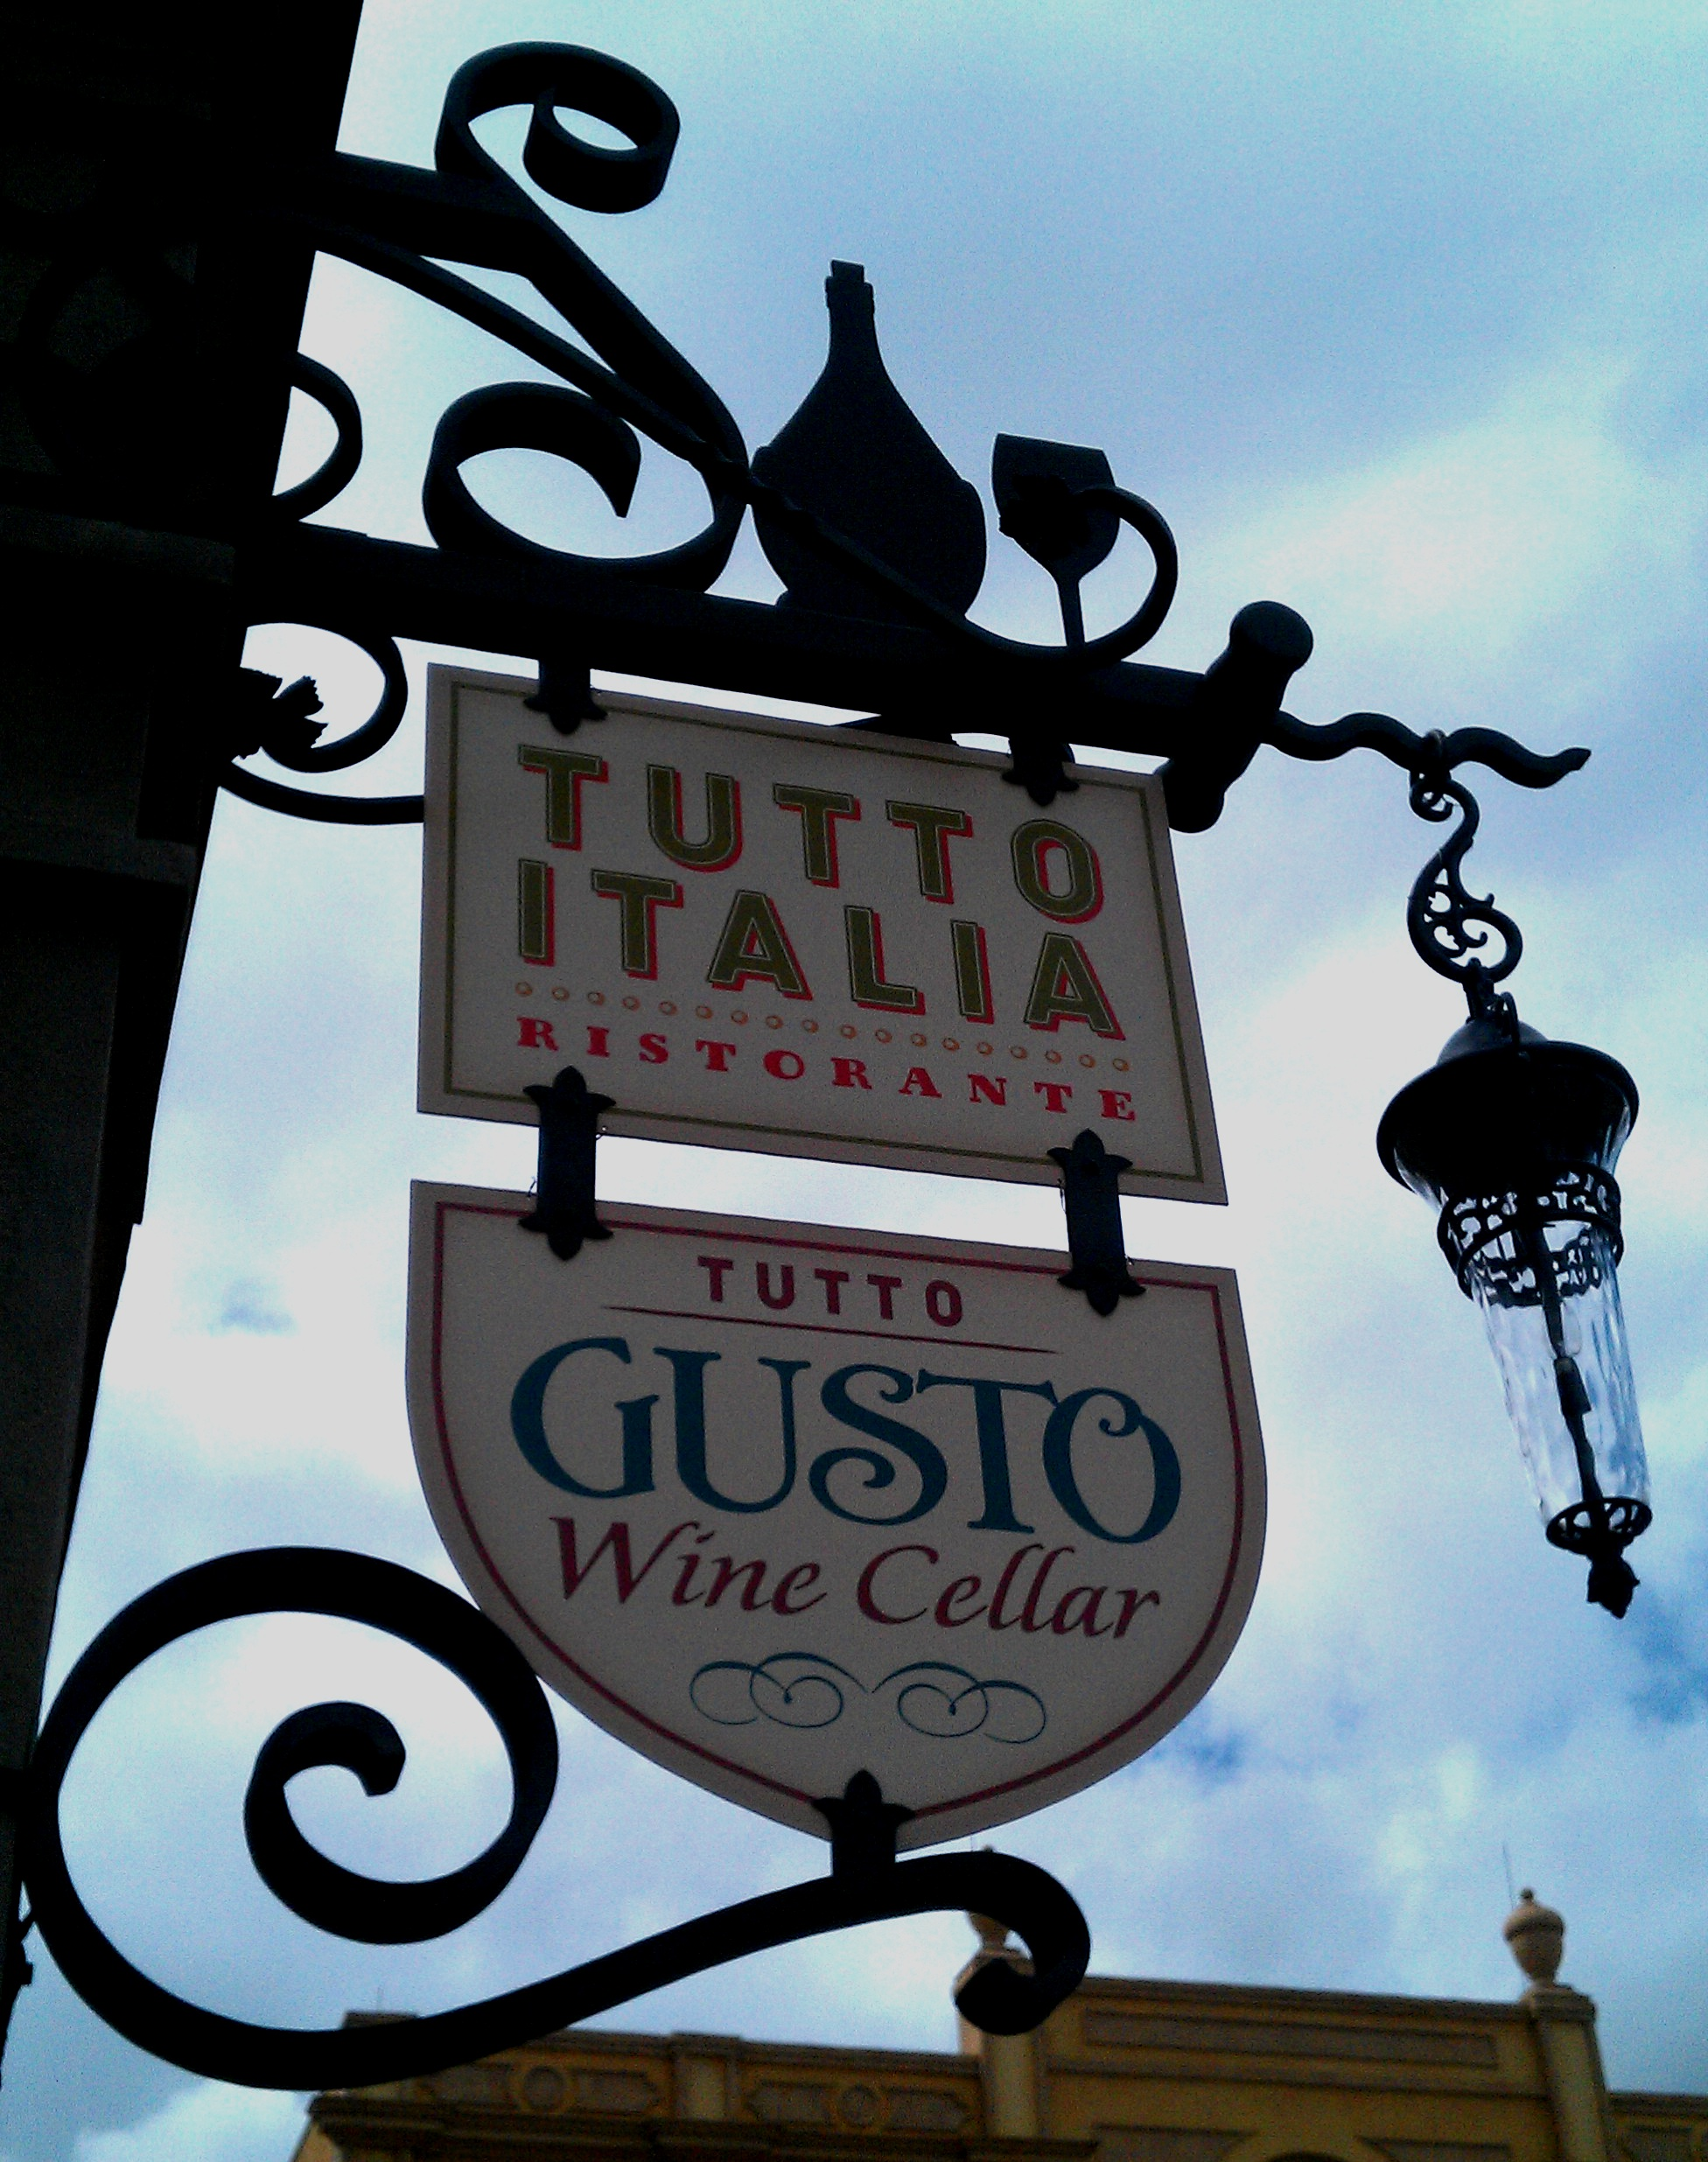 Tutto gusto wine cellar opens along with the renovated for Tutete italia